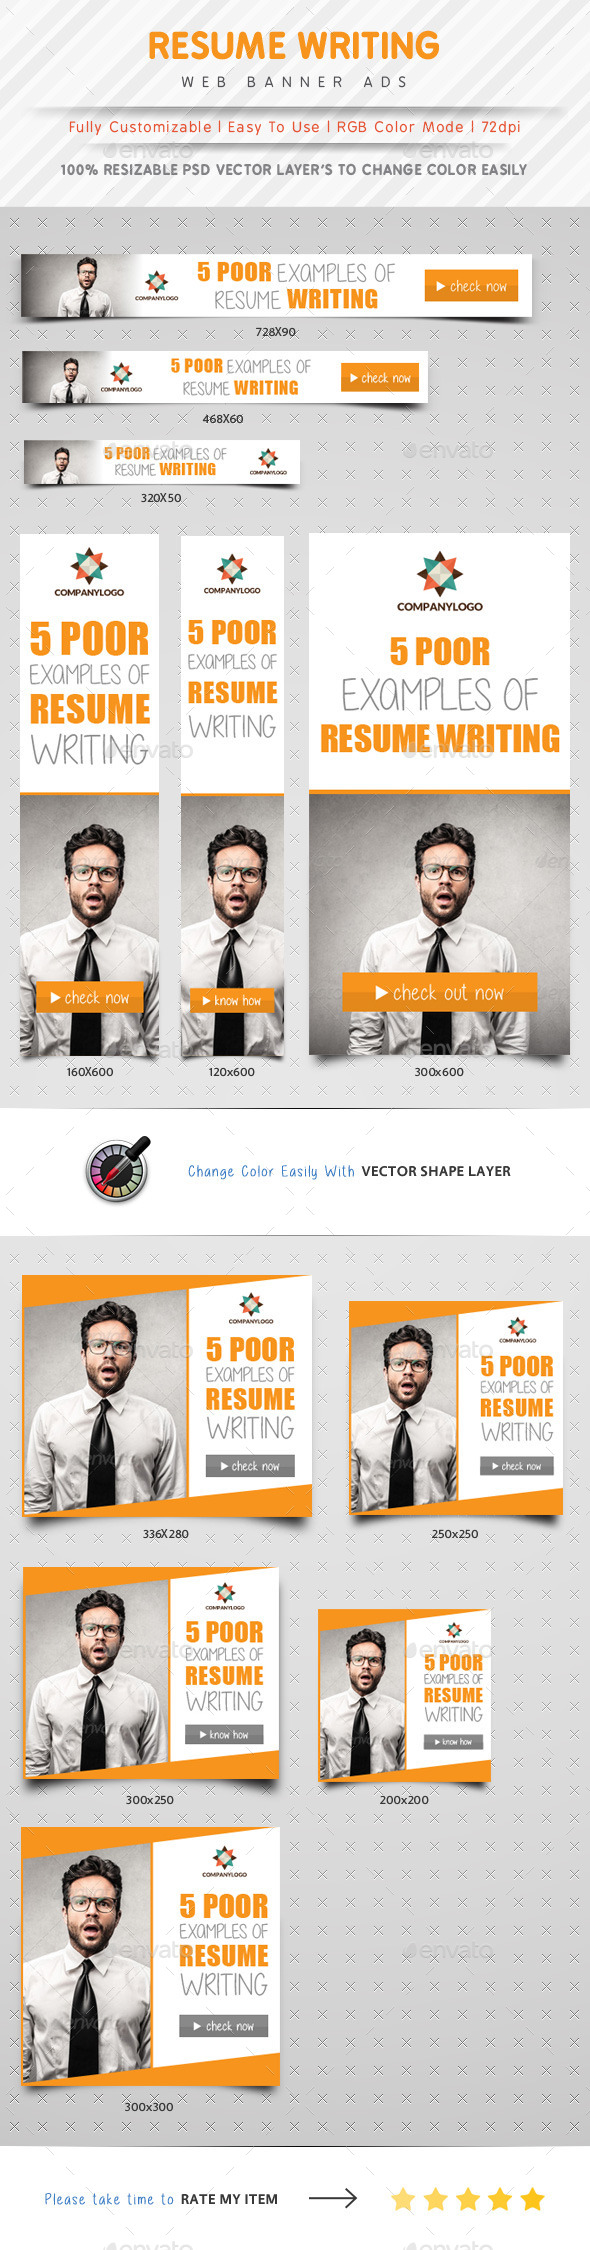 GraphicRiver Resume Writing Web Banner Ads 10323143